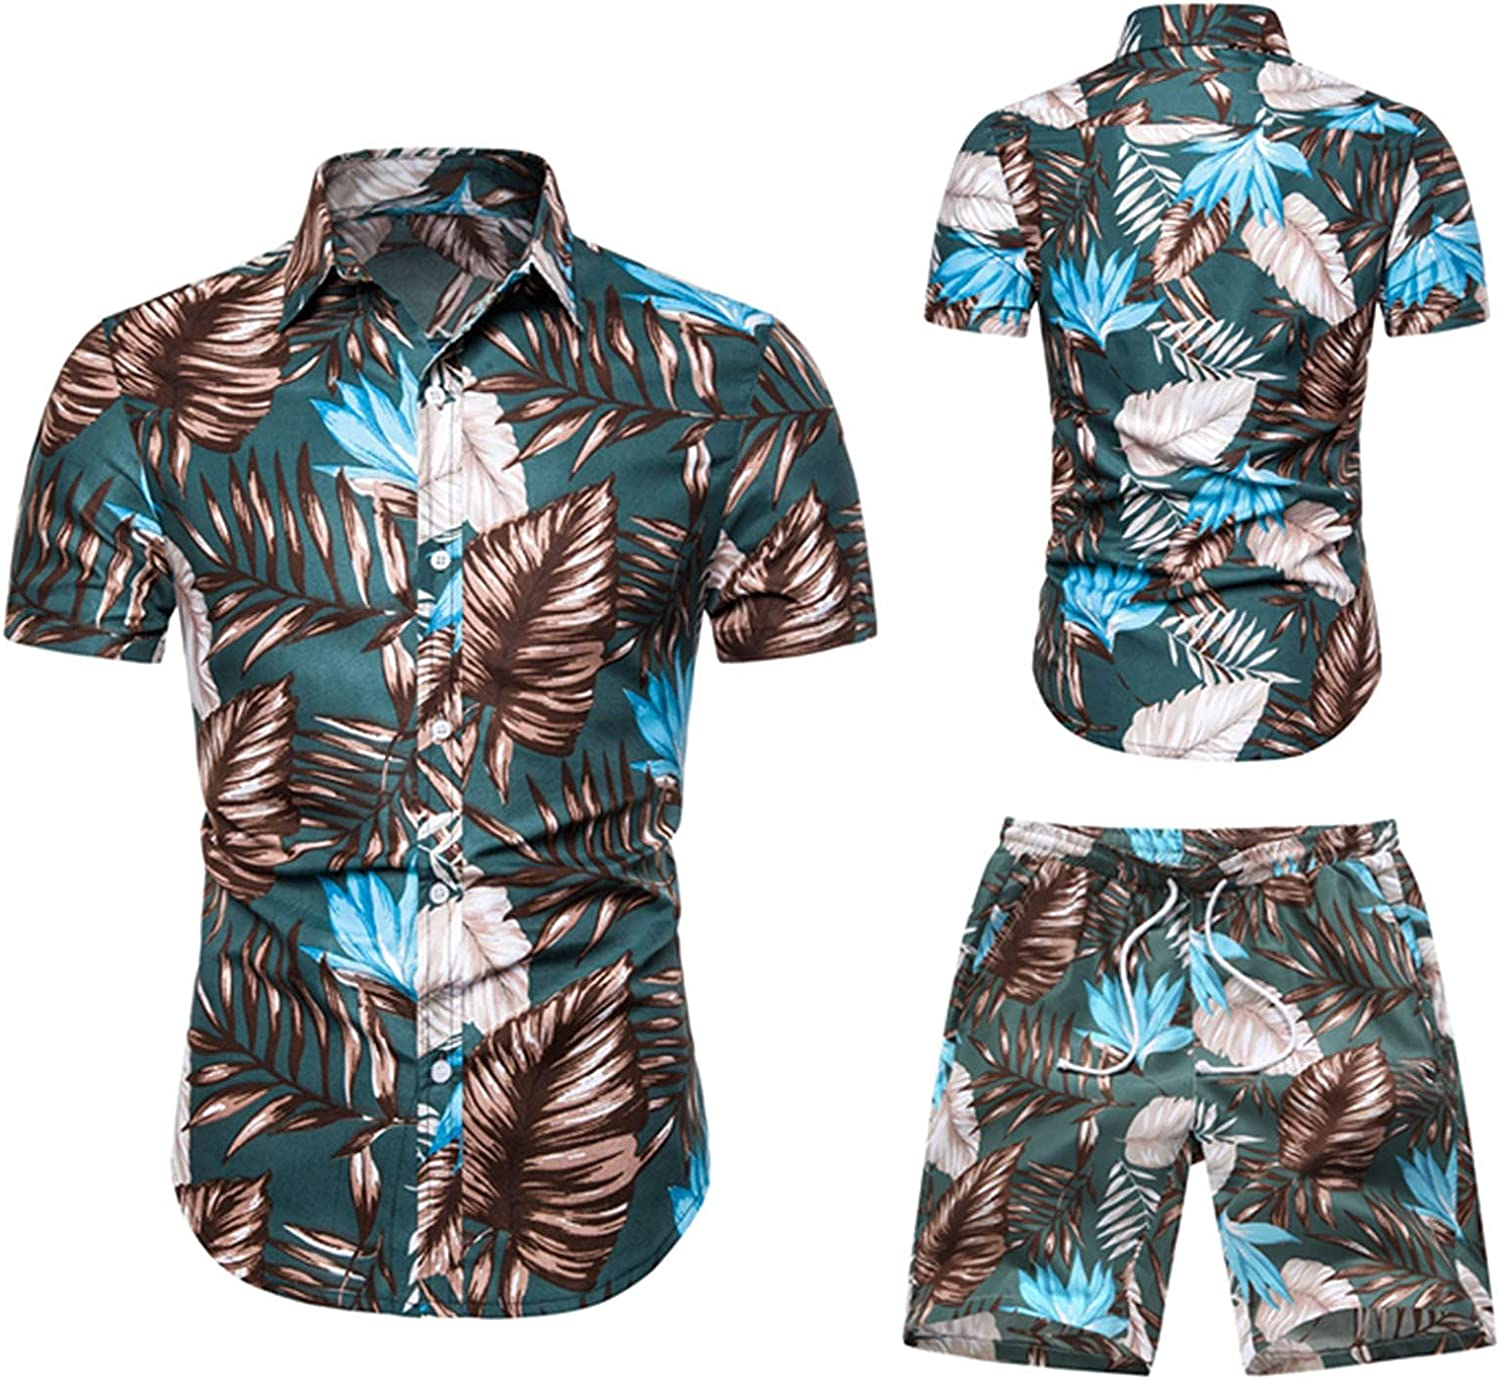 FUNEY Summer Outfits for Men Casual Button Down Short Sleeve Hawaiian Shirt and Drawstring Cargo Shorts Suits Tracksuit